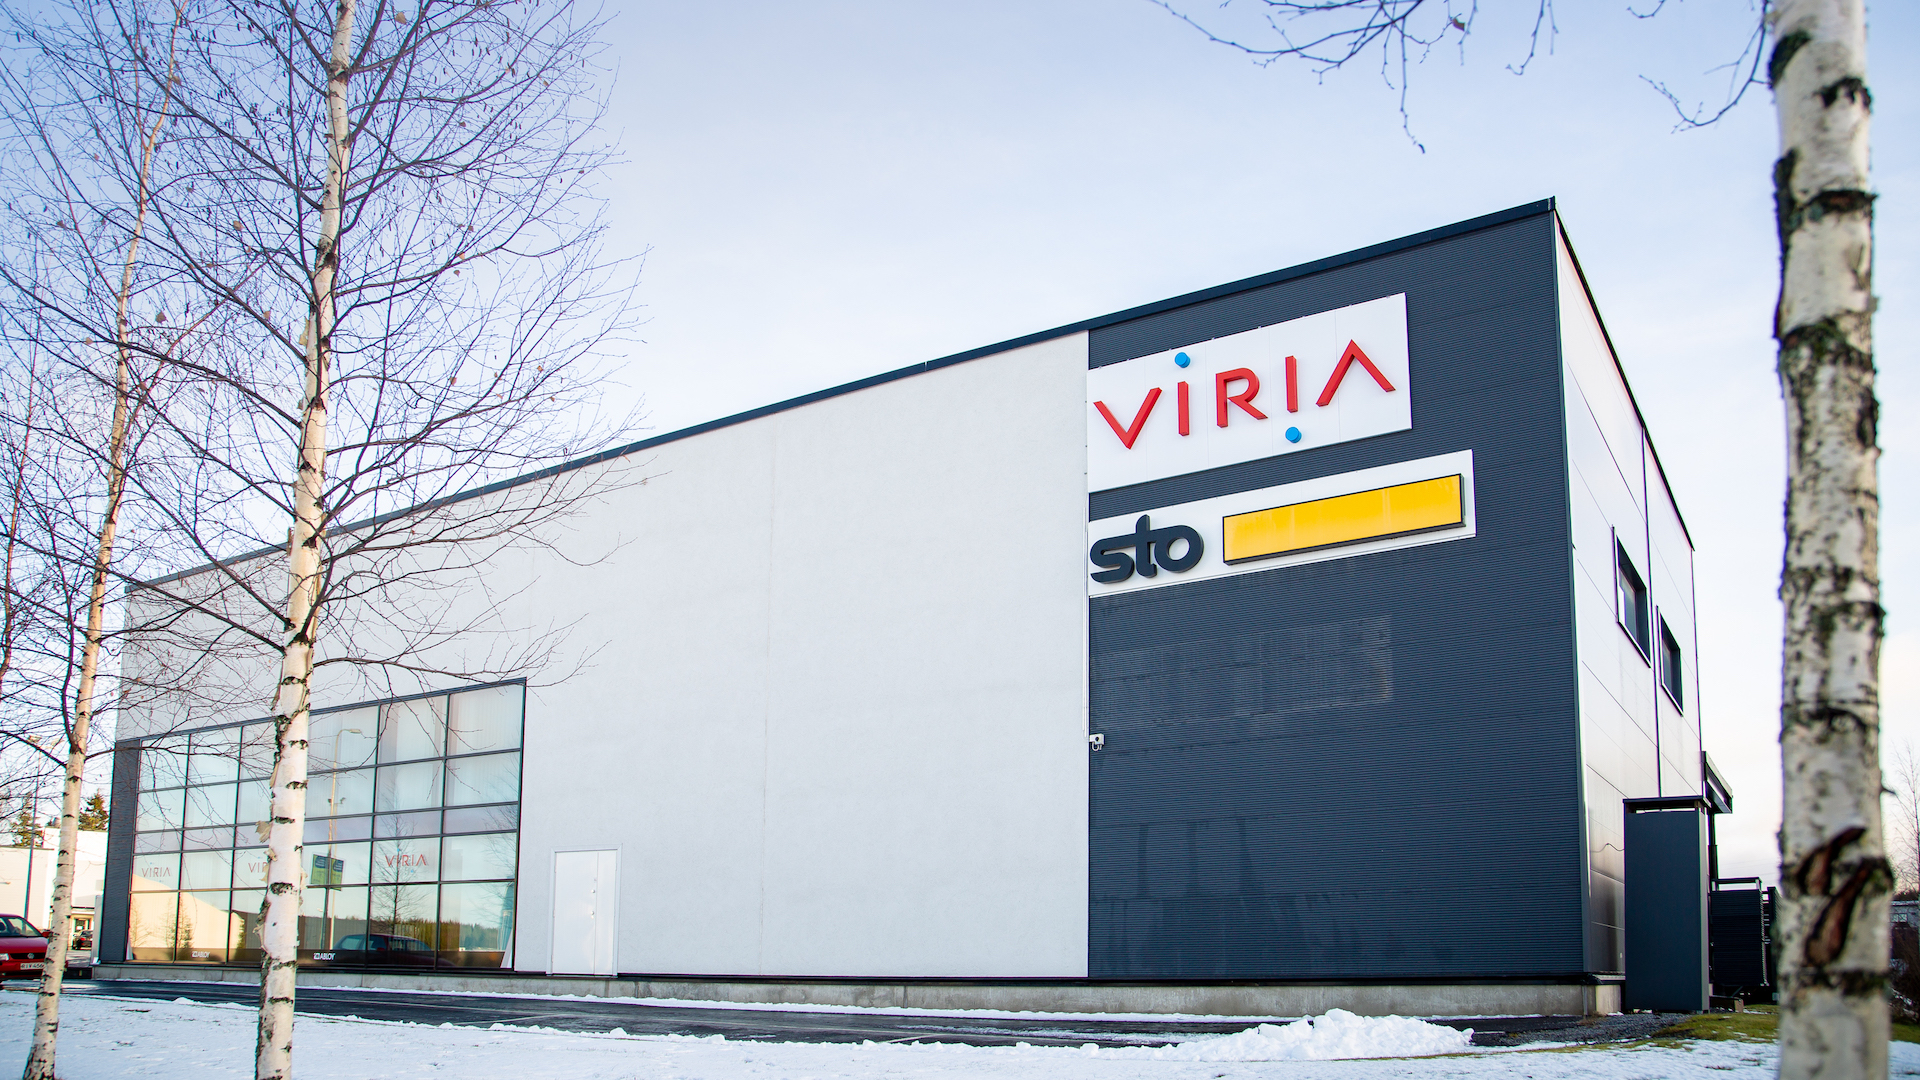 Business Tampere Viria